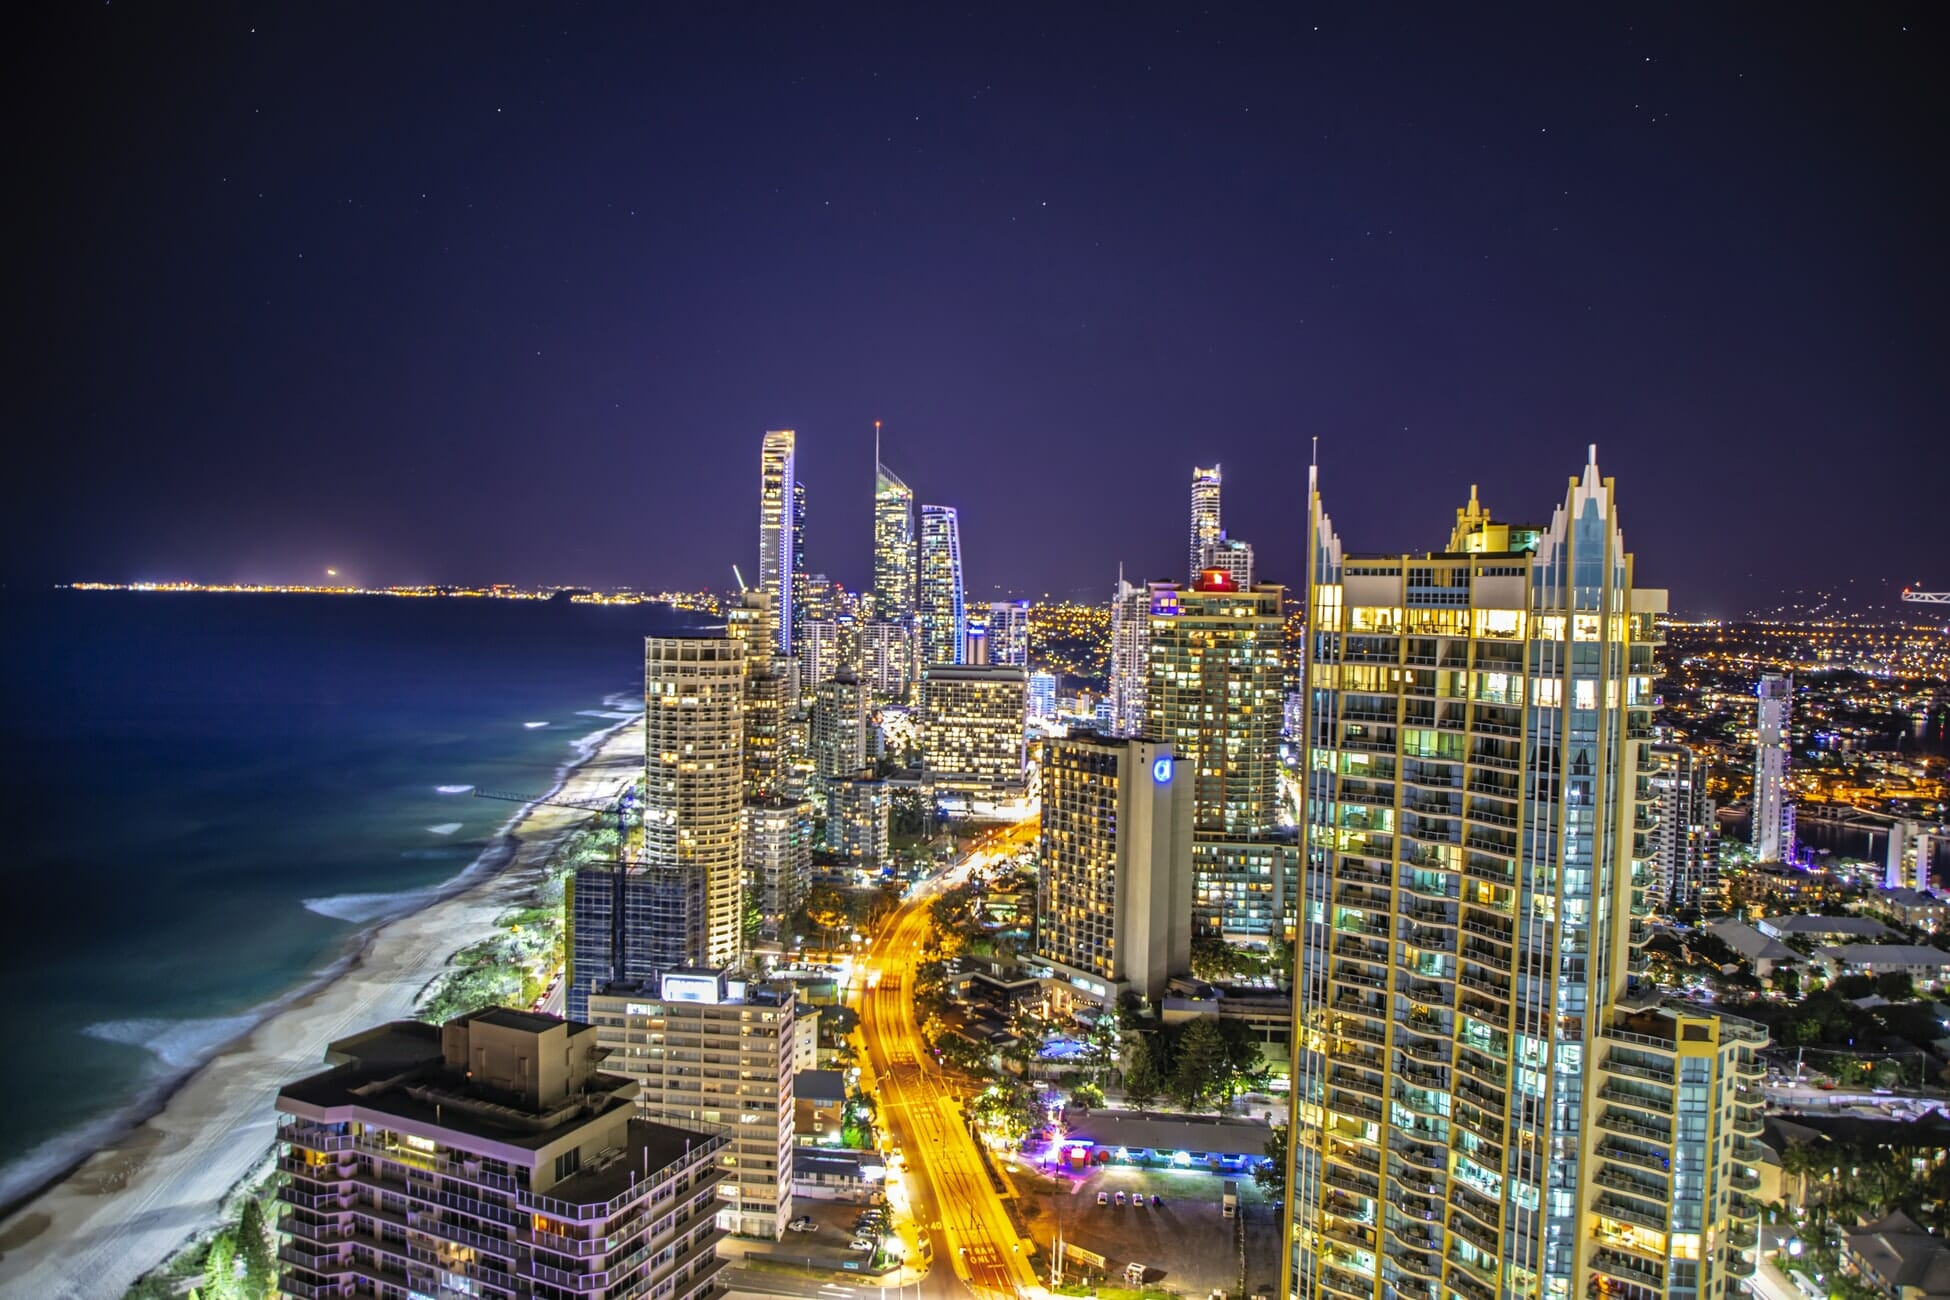 Nightlife in Surfers Paradise at the Gold Coast QLD